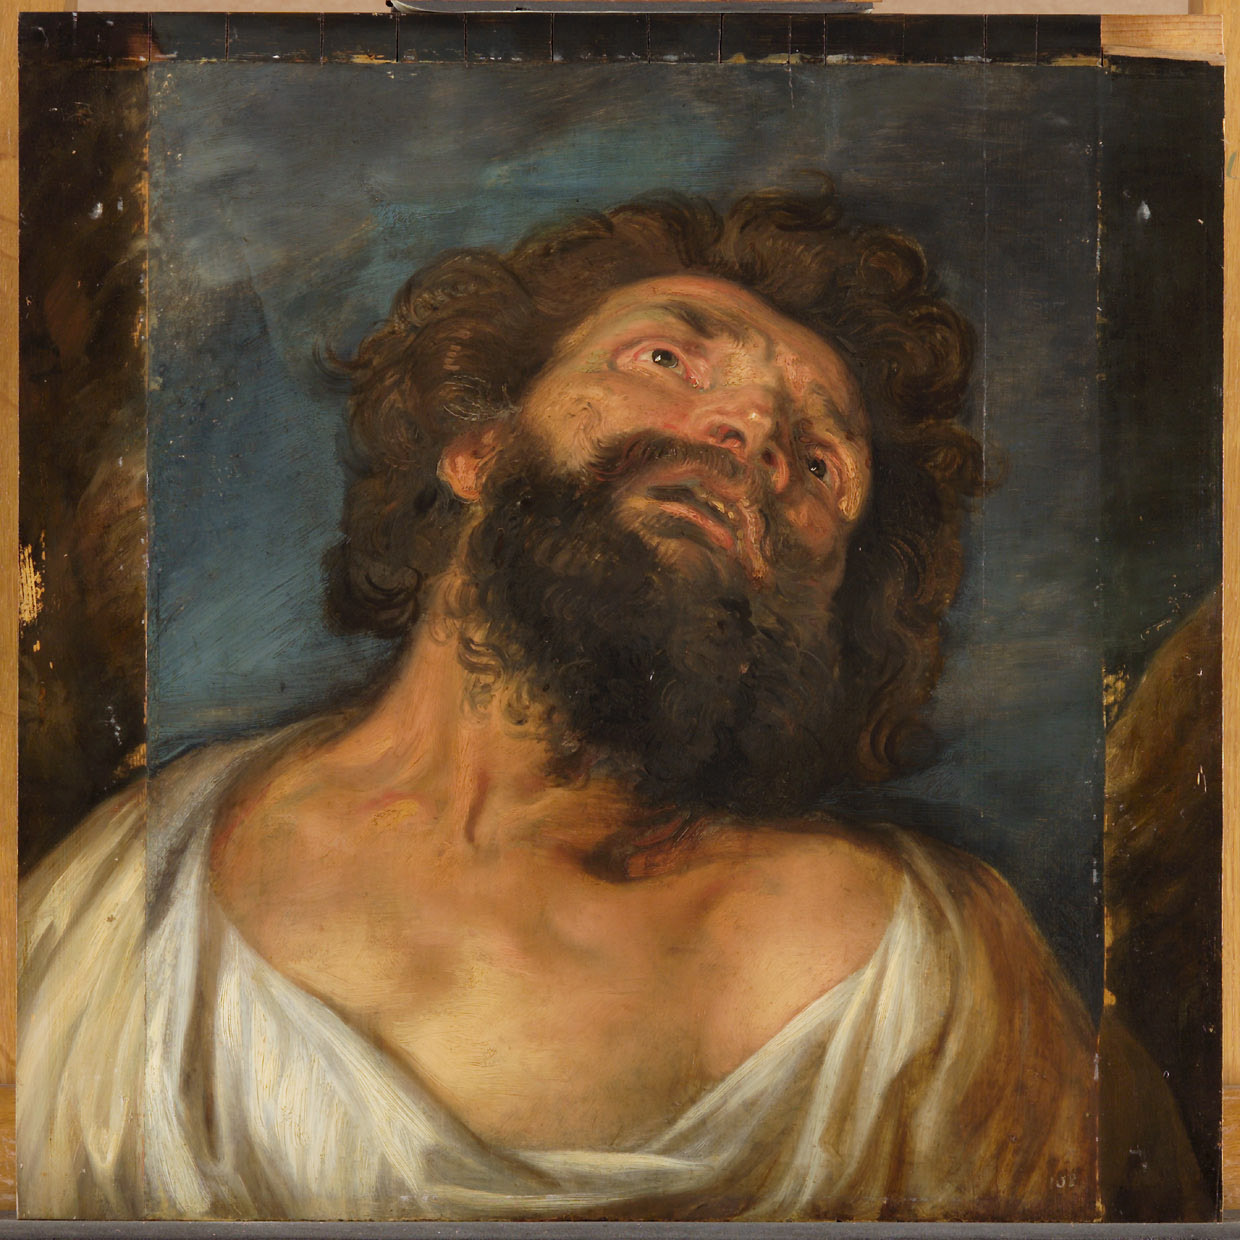 Study for the Head of the Penitent Thief